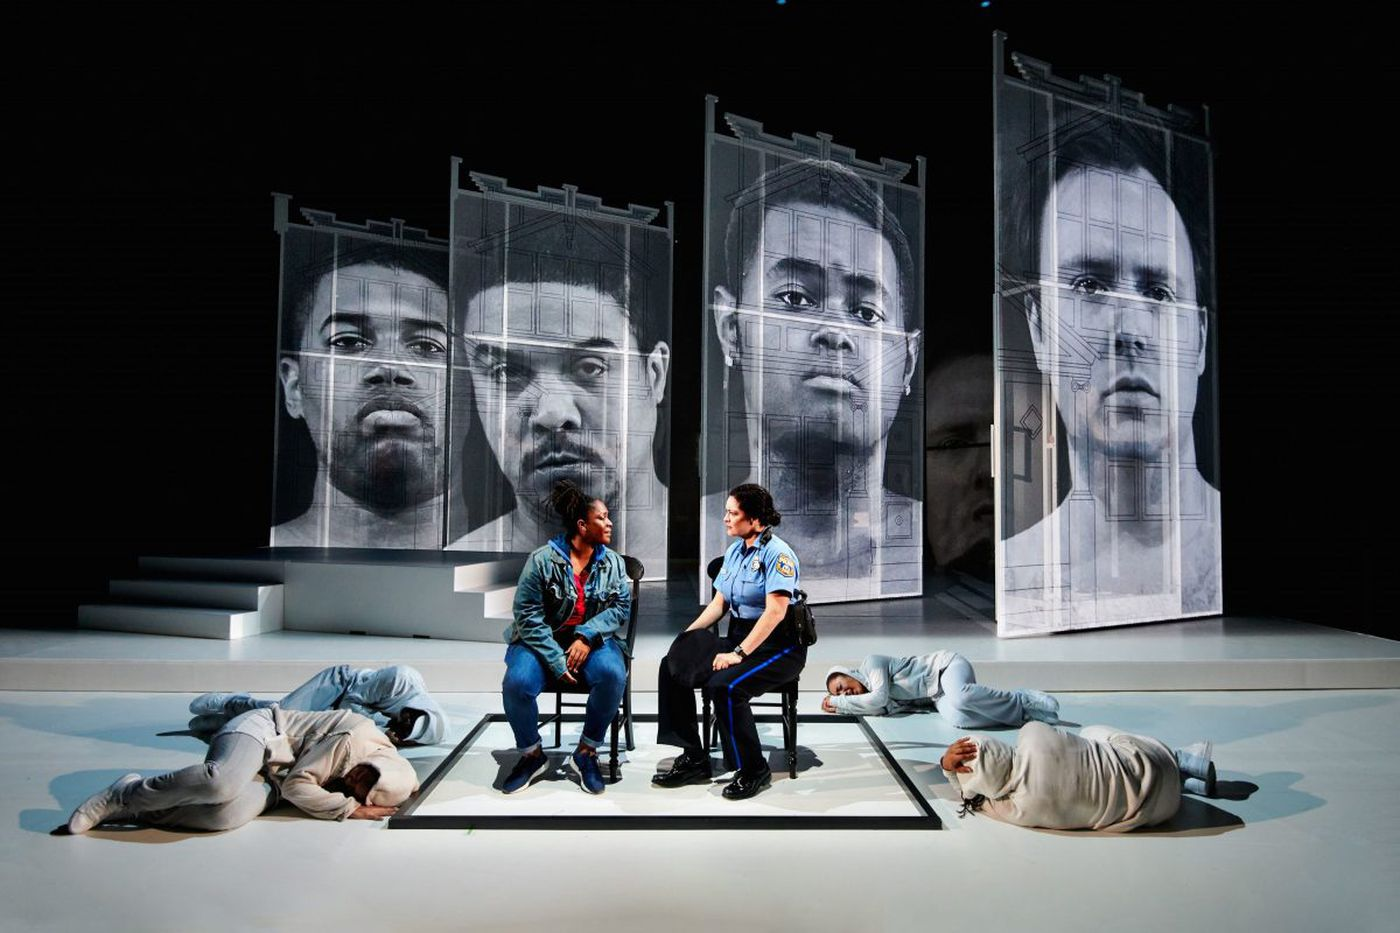 Has anything changed? Opera Philadelphia uses MOVE as a lens